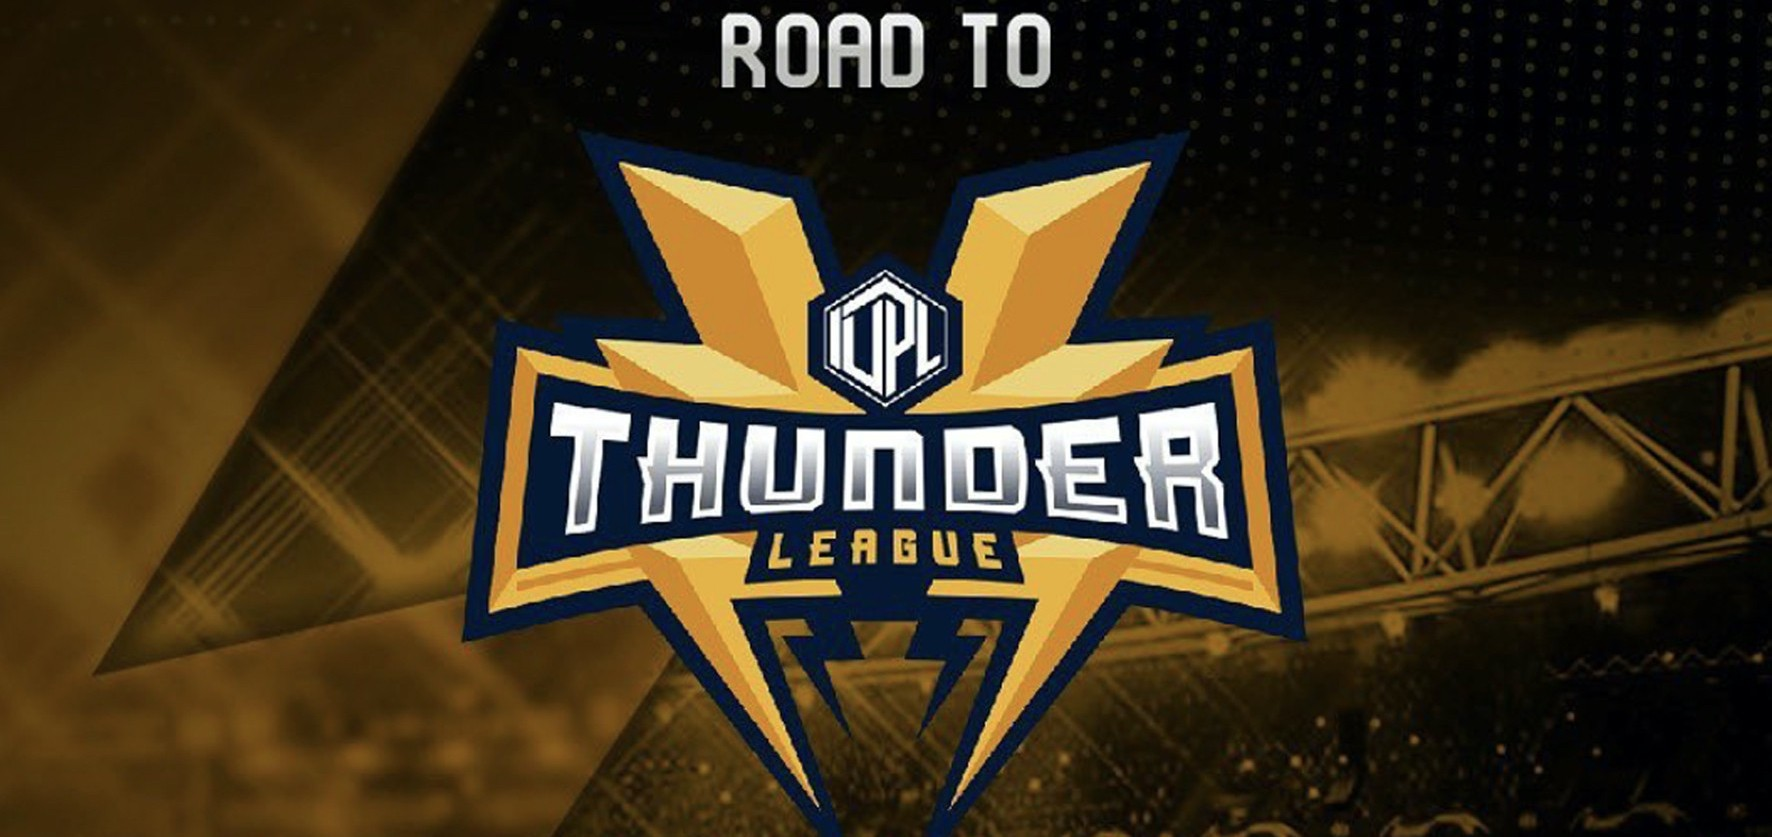 IVPL Road To Thunder FIFA21 11 vs 11 Online Competition